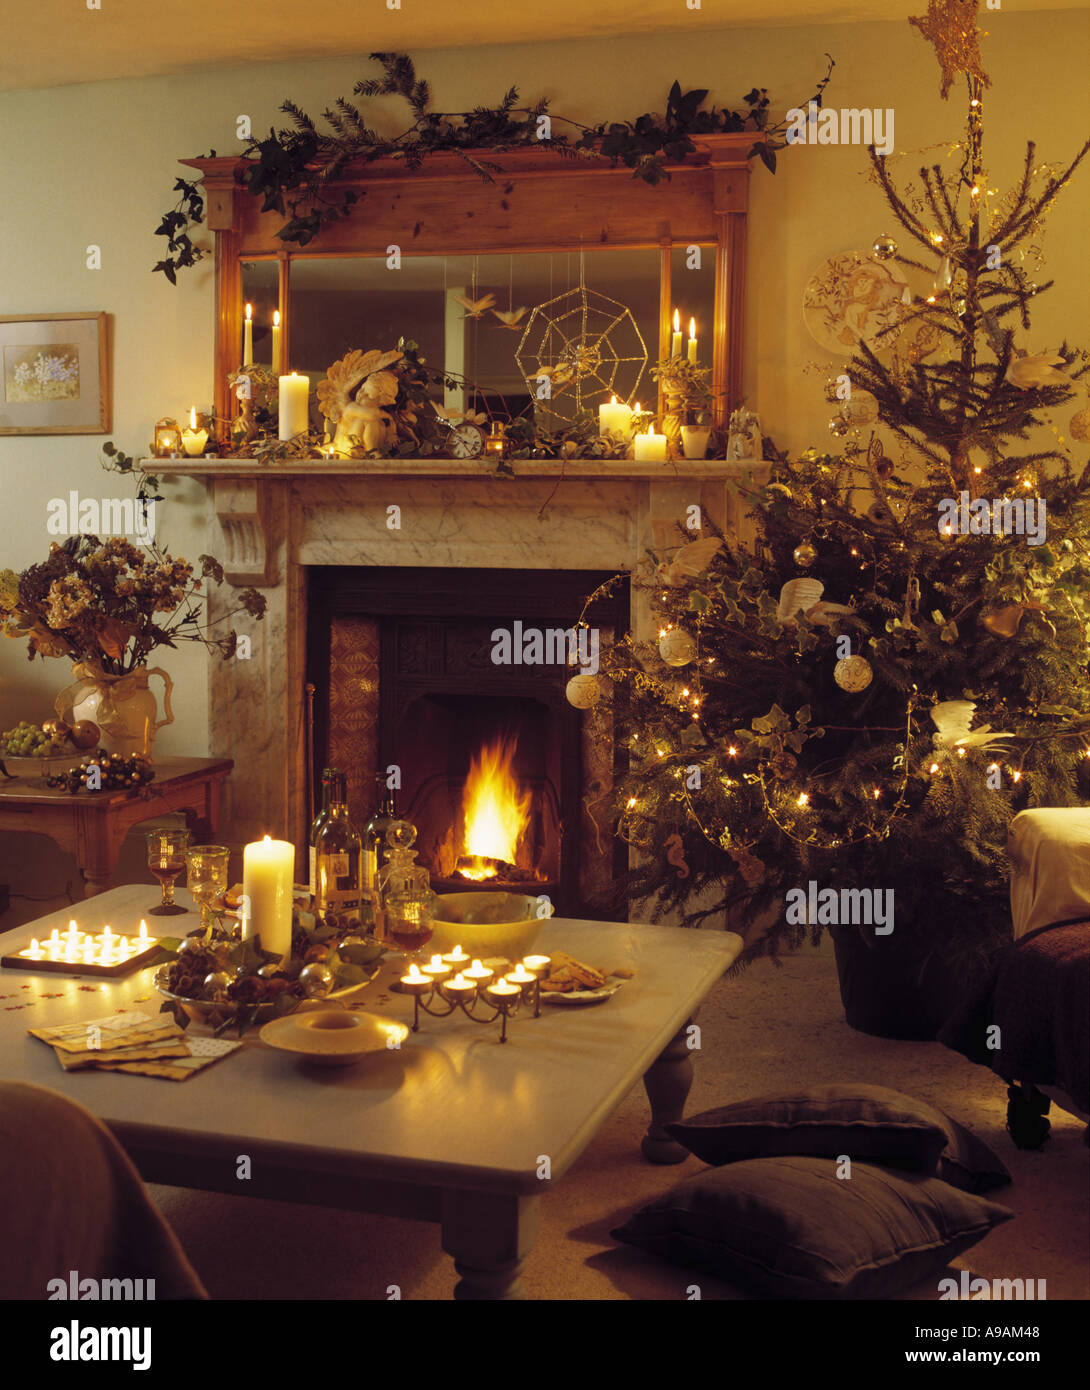 Christmas tree beside fireplace with lighted fire in warm